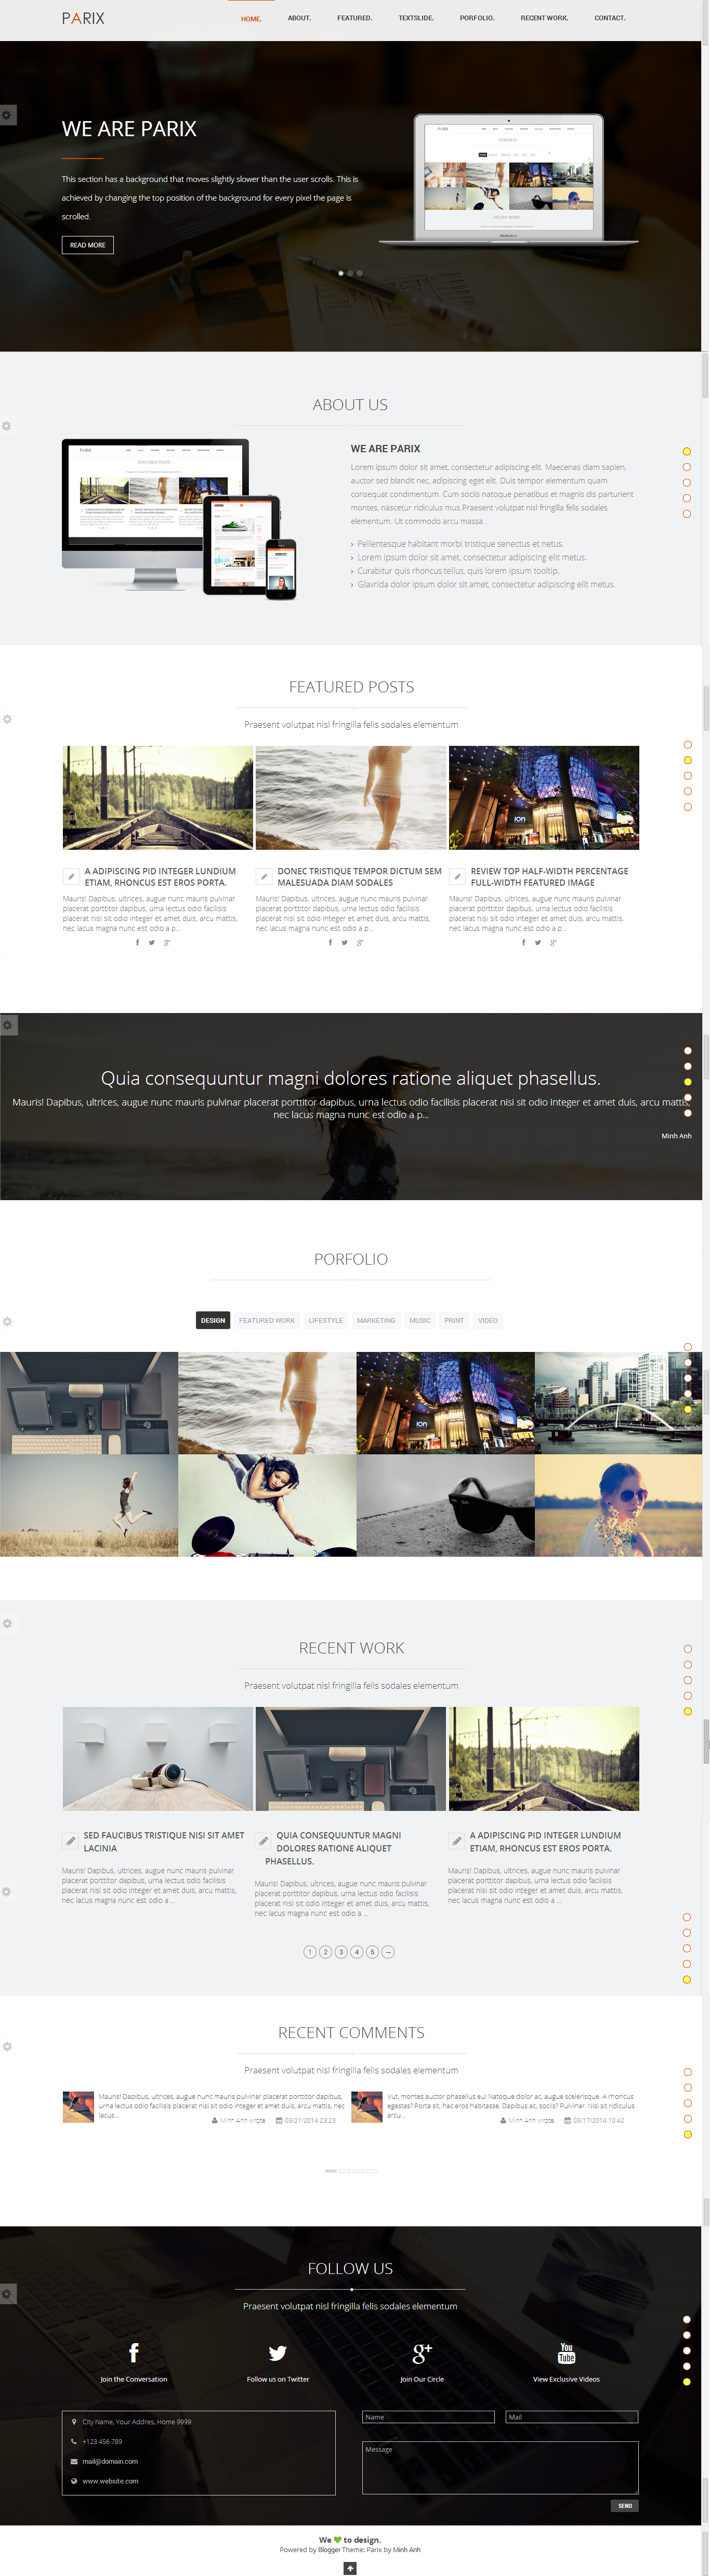 Parix - One Page Blogger Template by minhanh | ThemeForest